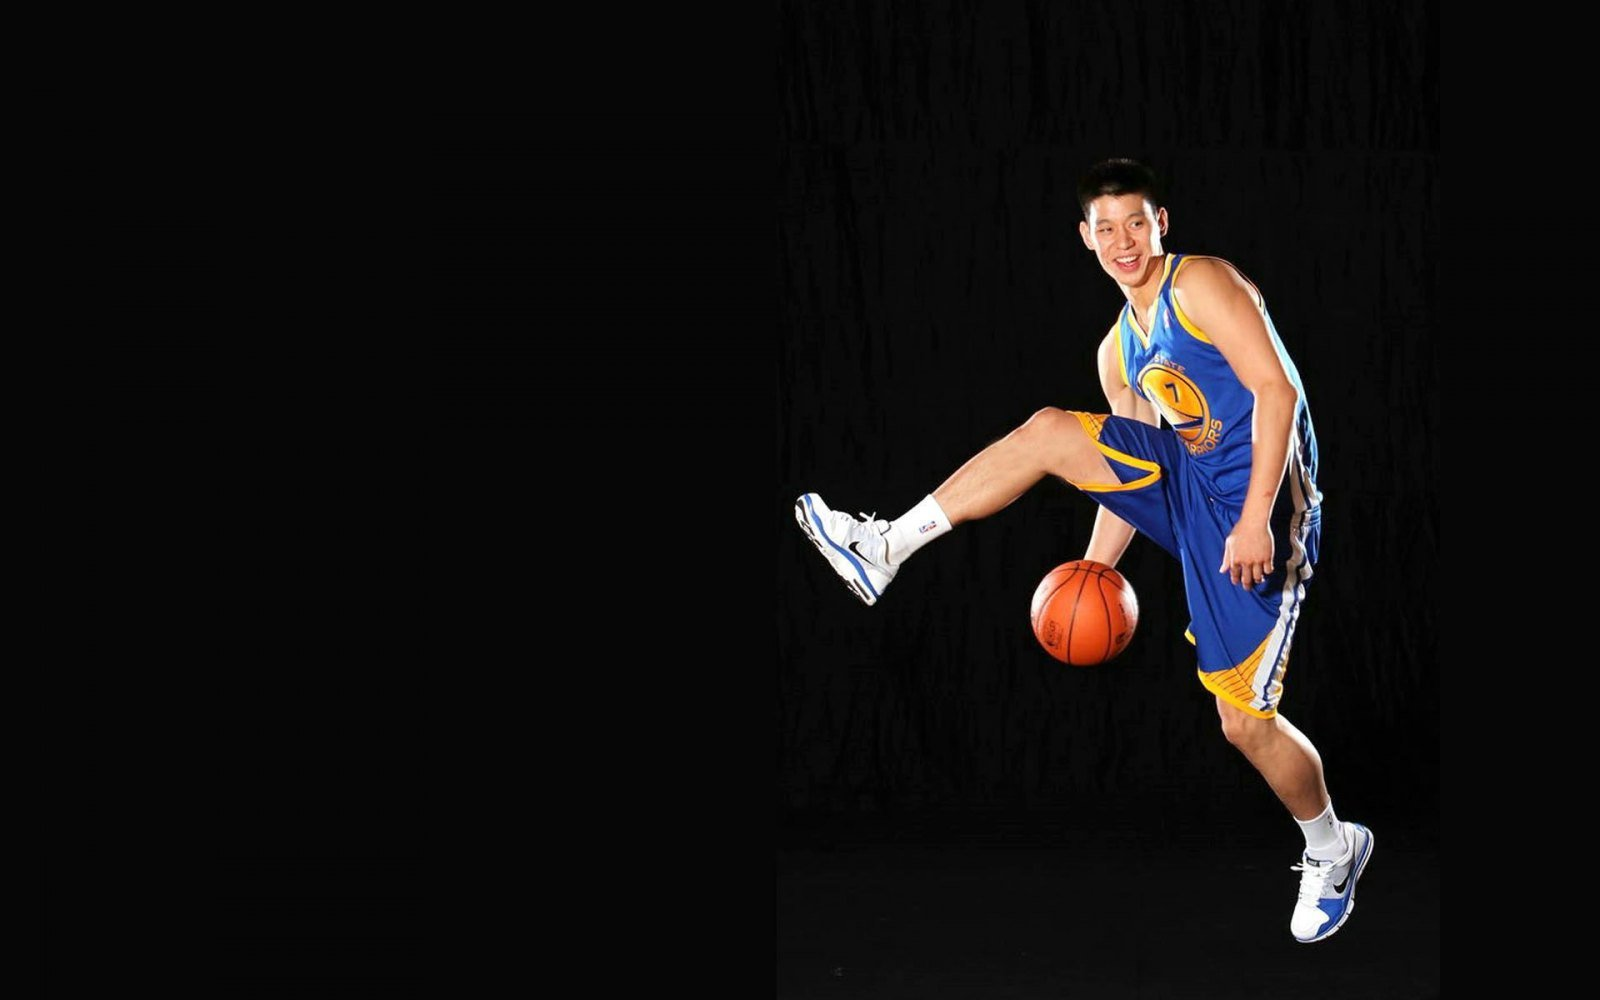 hd wallpapers of basketball players